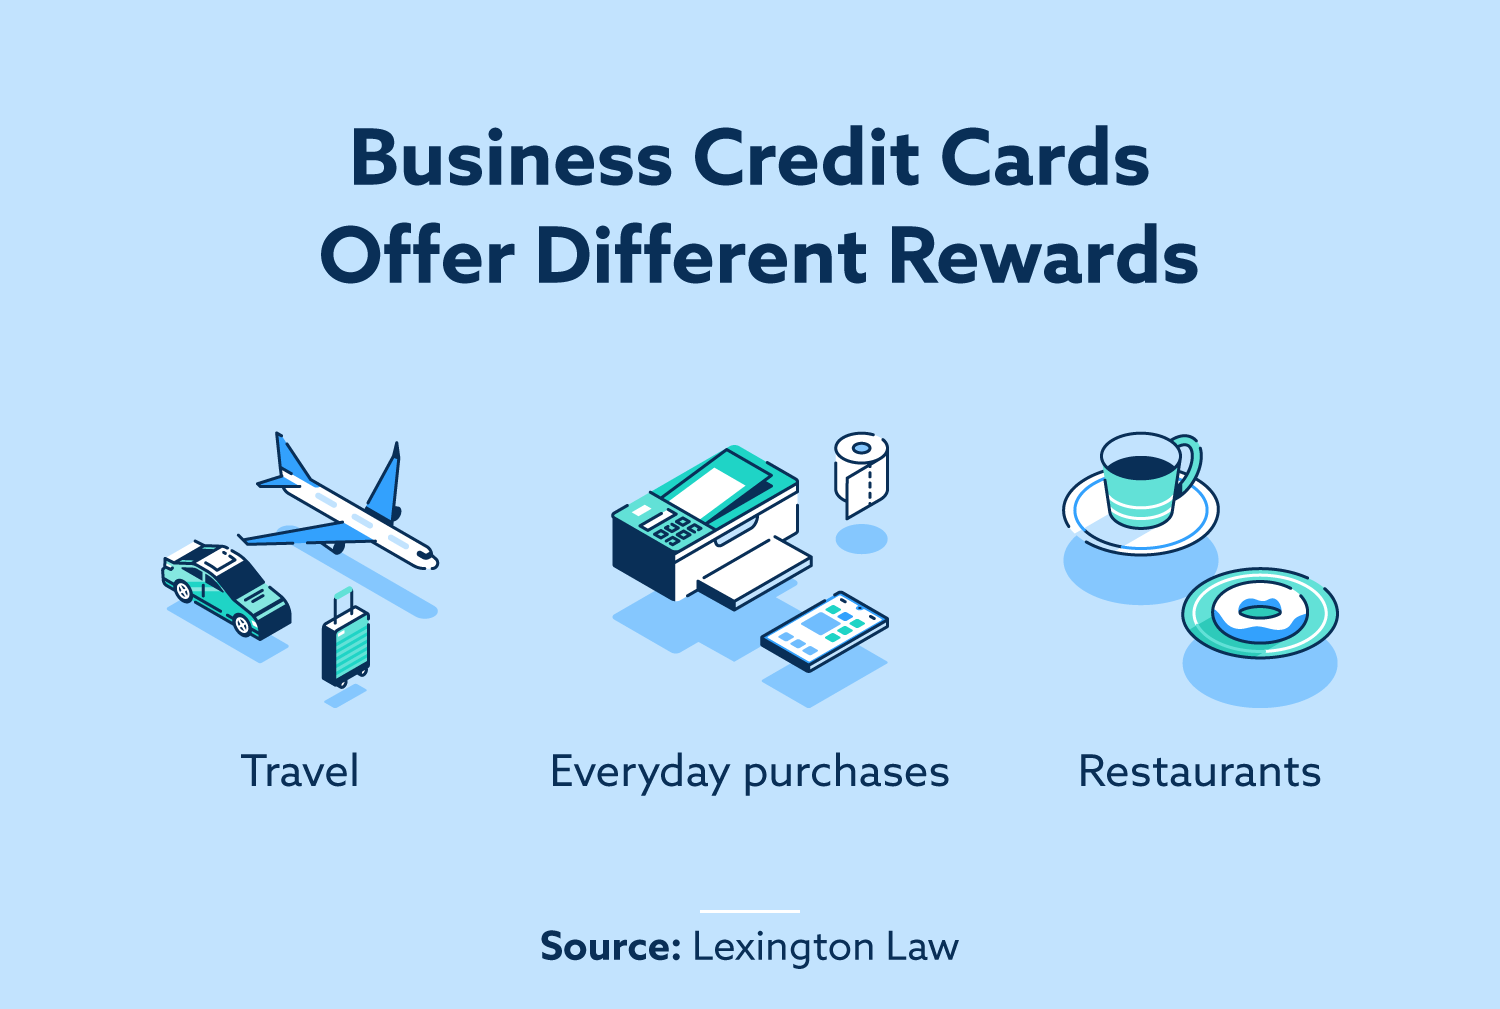 Business credit cards offer different rewards, like rewards on travel expenses, everyday purchases and restaurants.